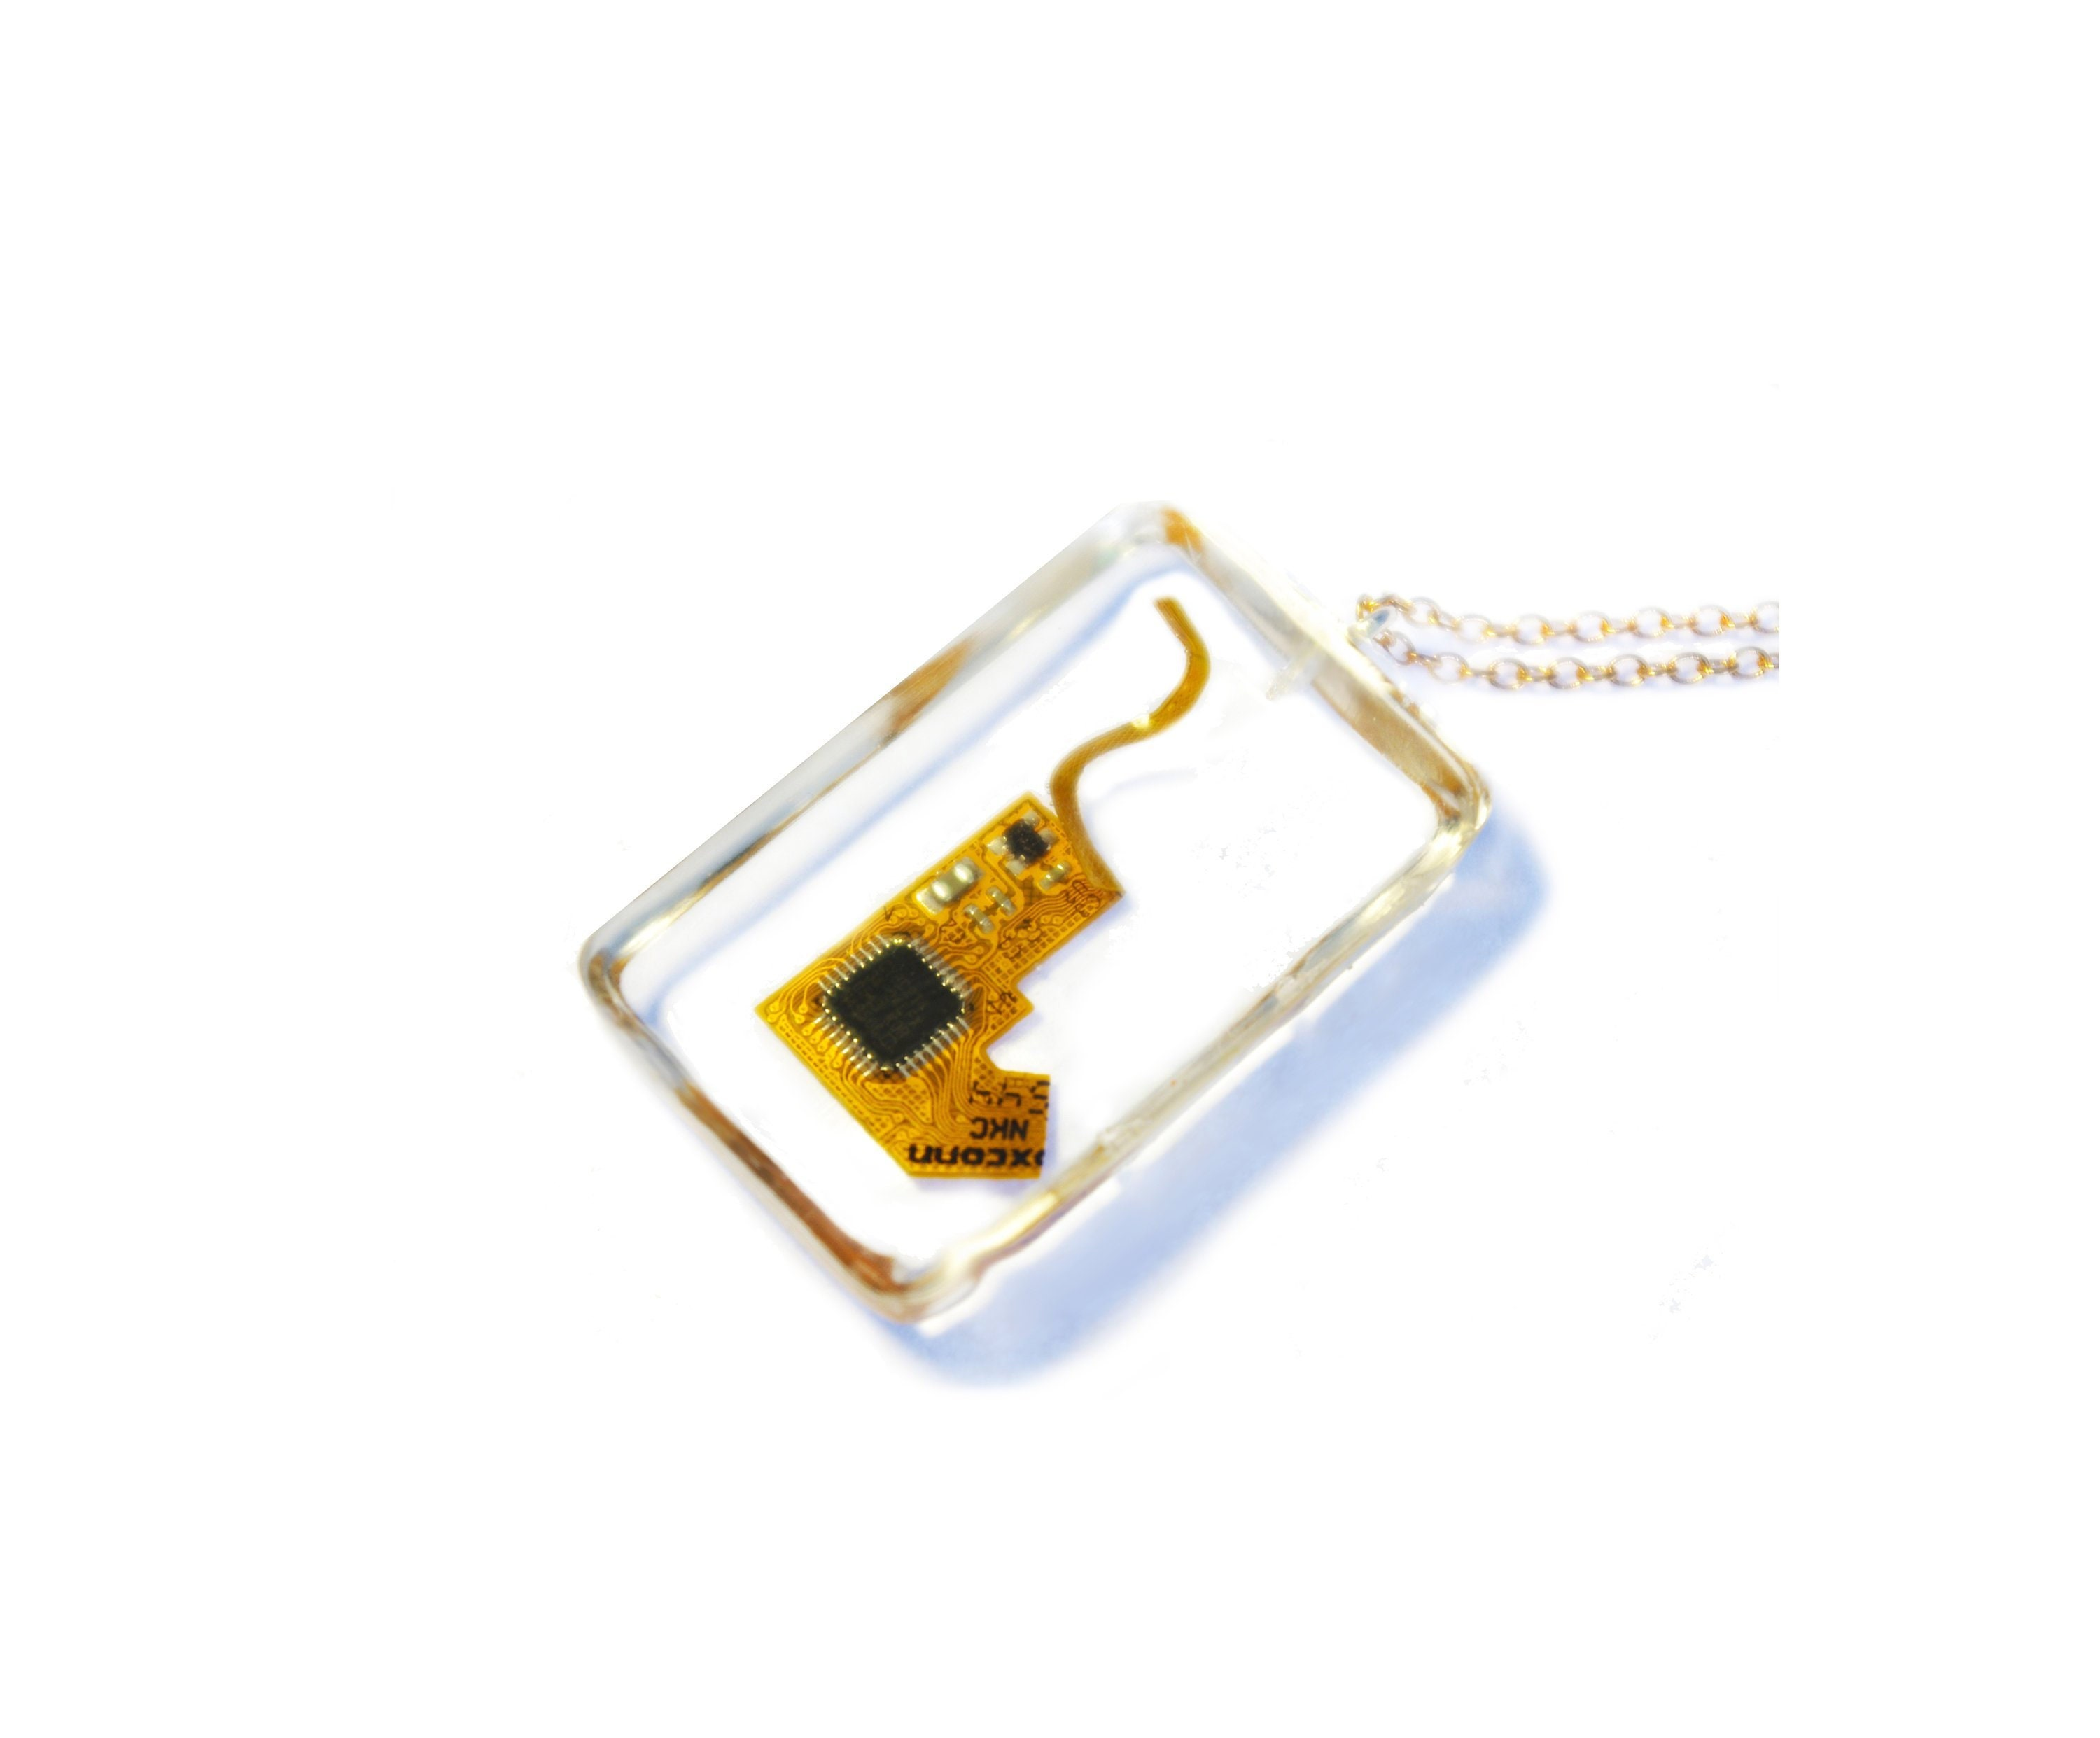 Ipod Nano Pcb Pendant Computer Chip Necklace Recycled Etsy How To Recycle Circuit Boards 50